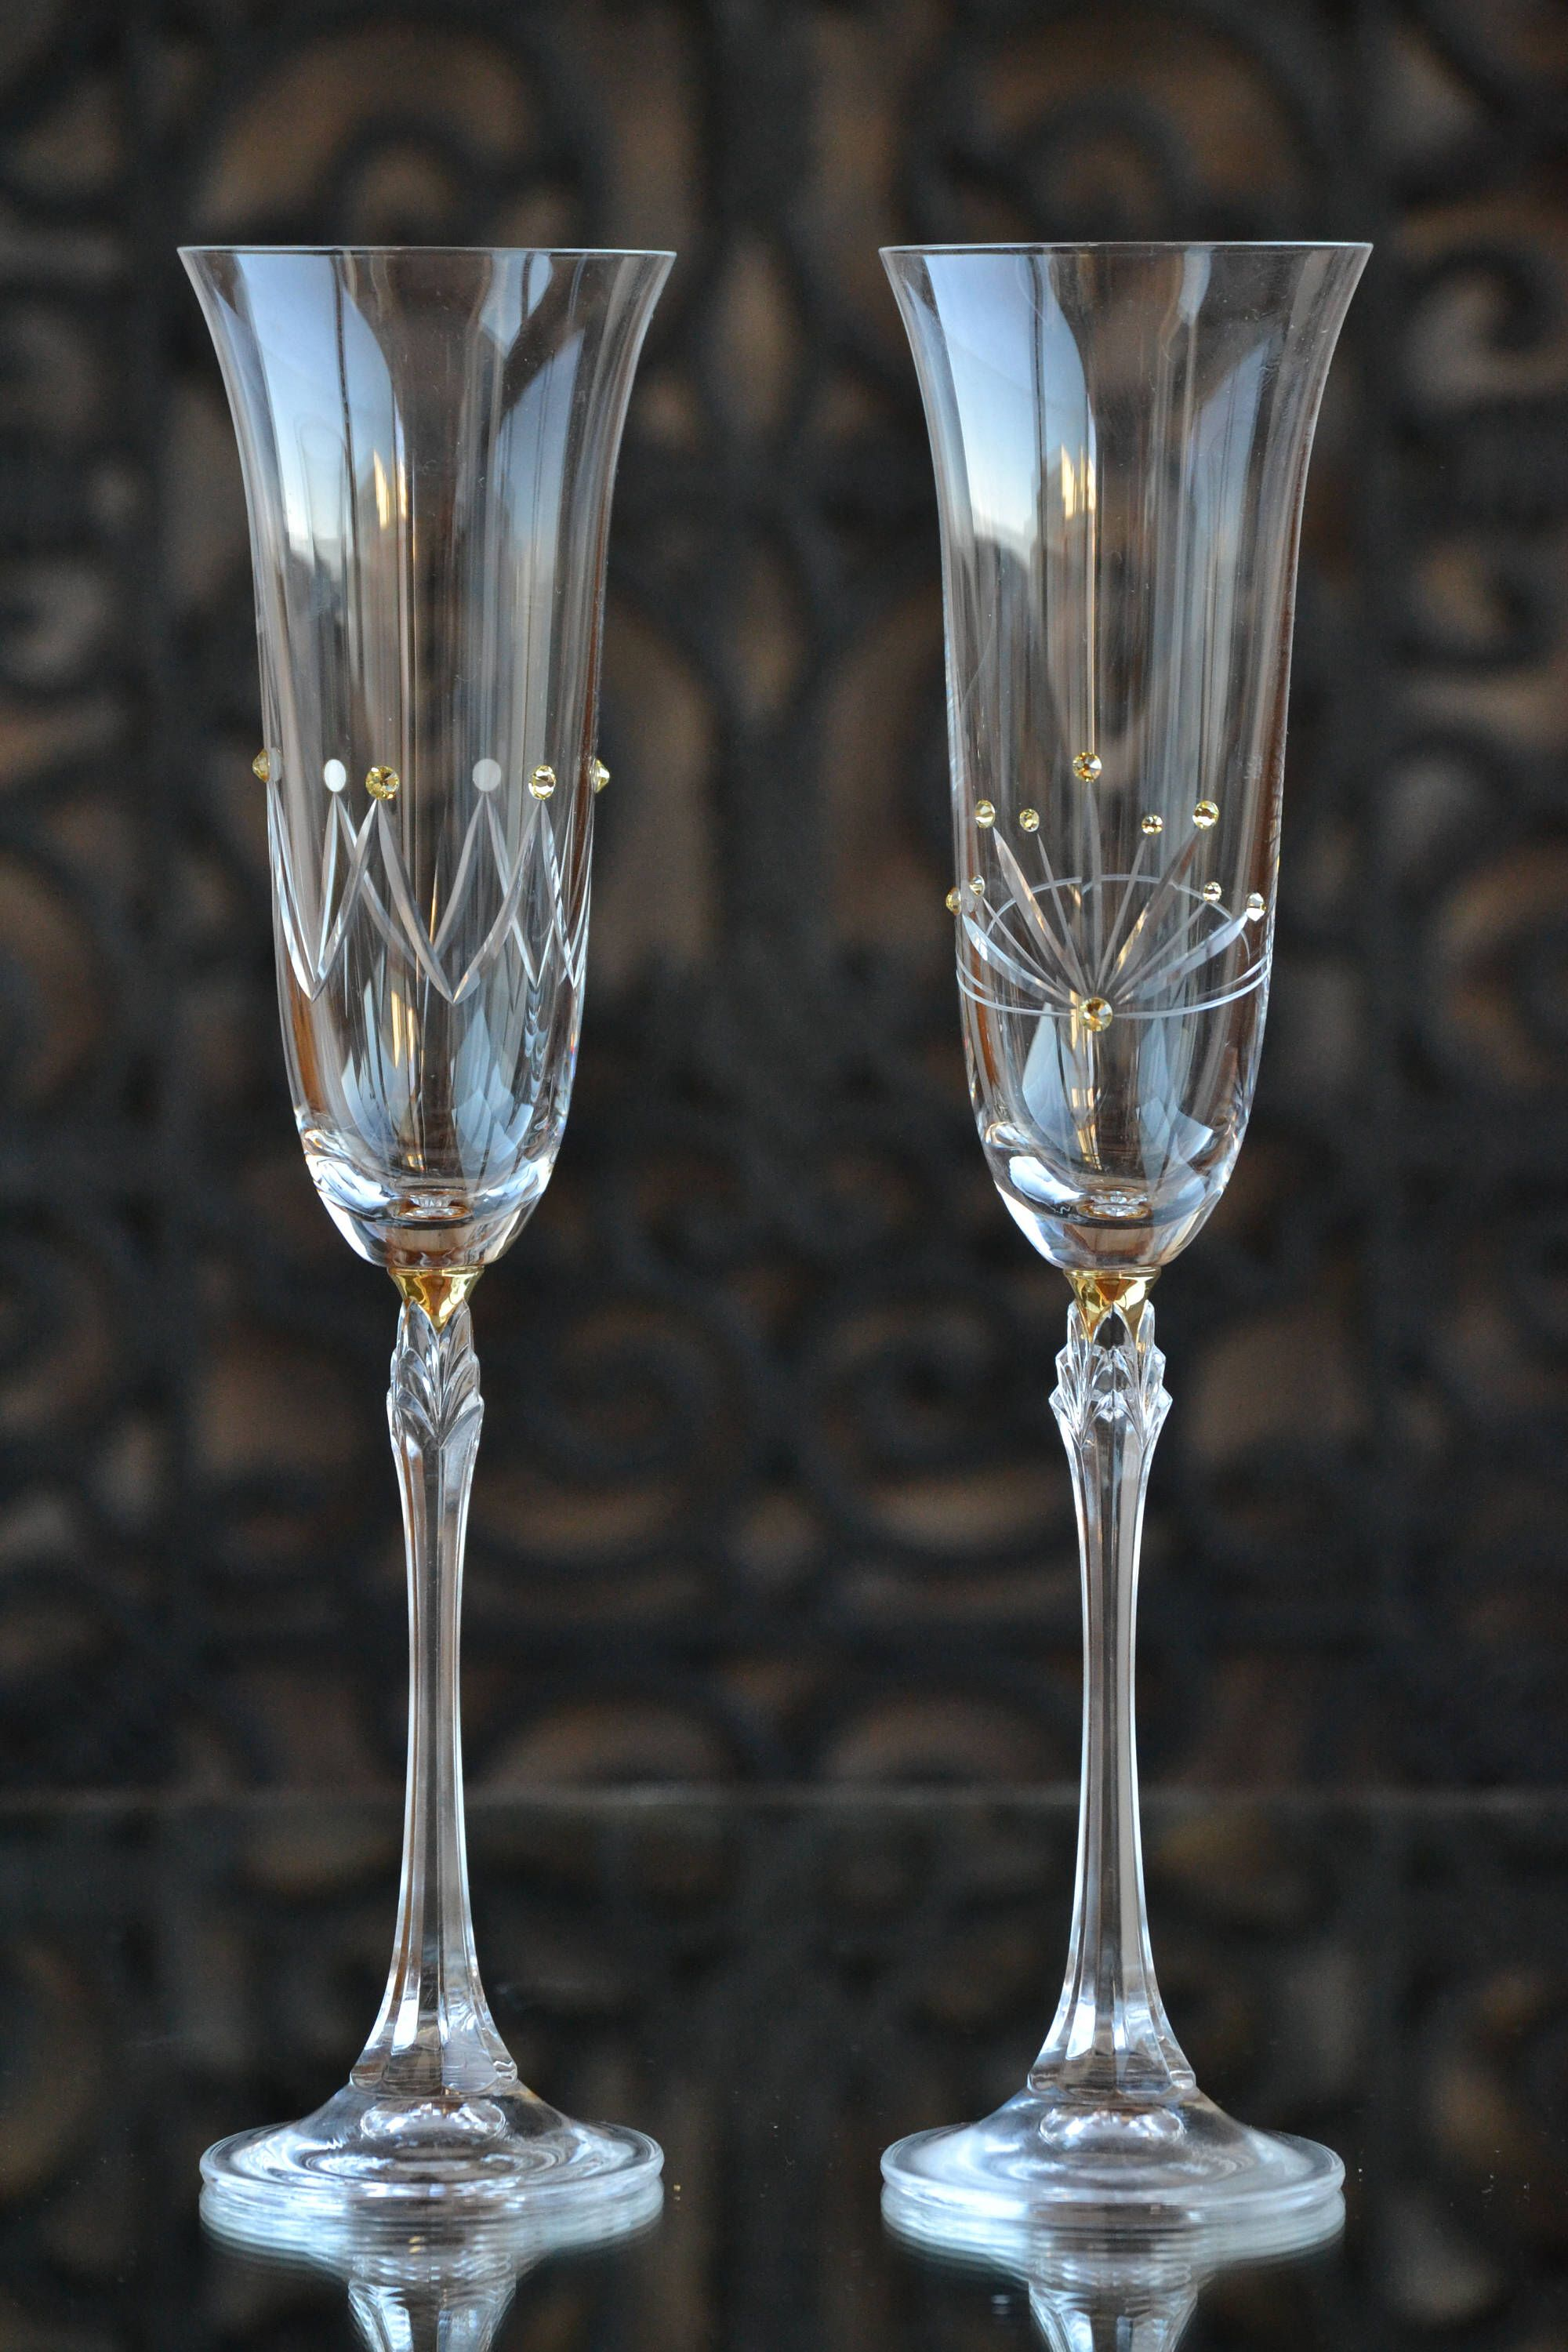 King And Queen Toasting Flutes Bride And Groom Engraved Etsy Bride And Groom Glasses Wedding Glasses Wedding Wine Glasses